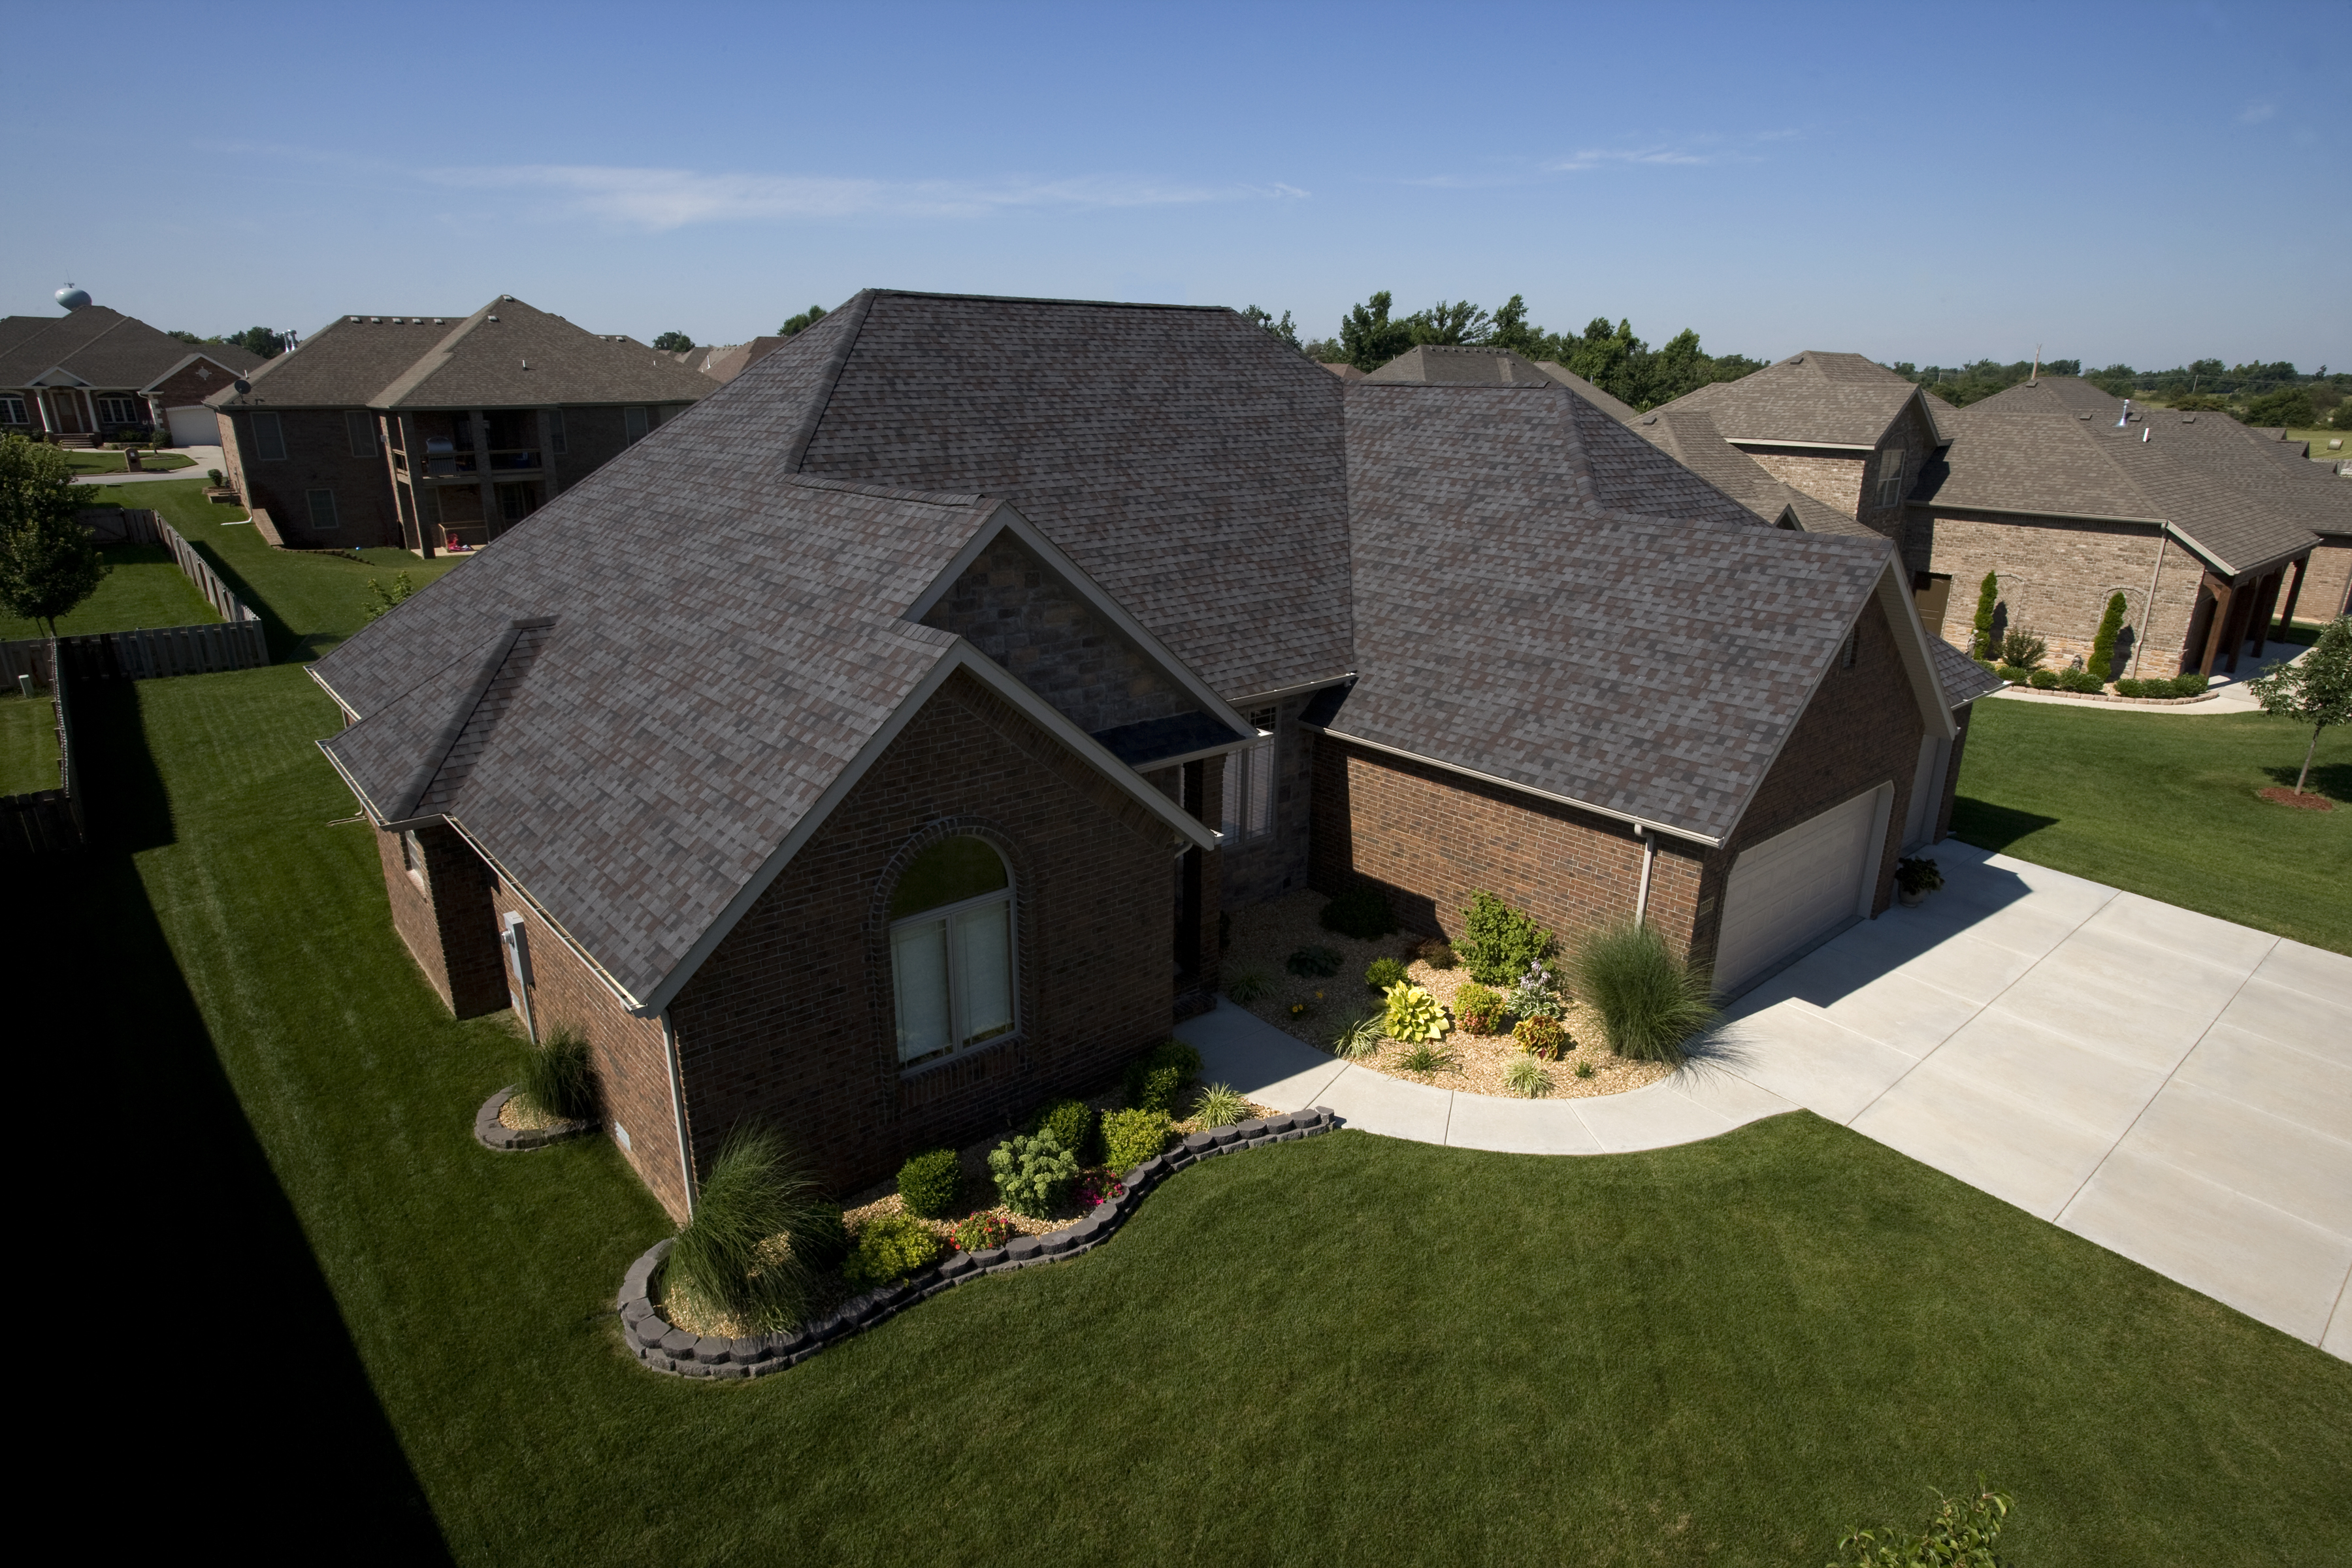 Beautiful Homes Start with Heritage Shingles: Cedar Shake Roof Installation | Heritage Shingles | Cedar Shingles Direct